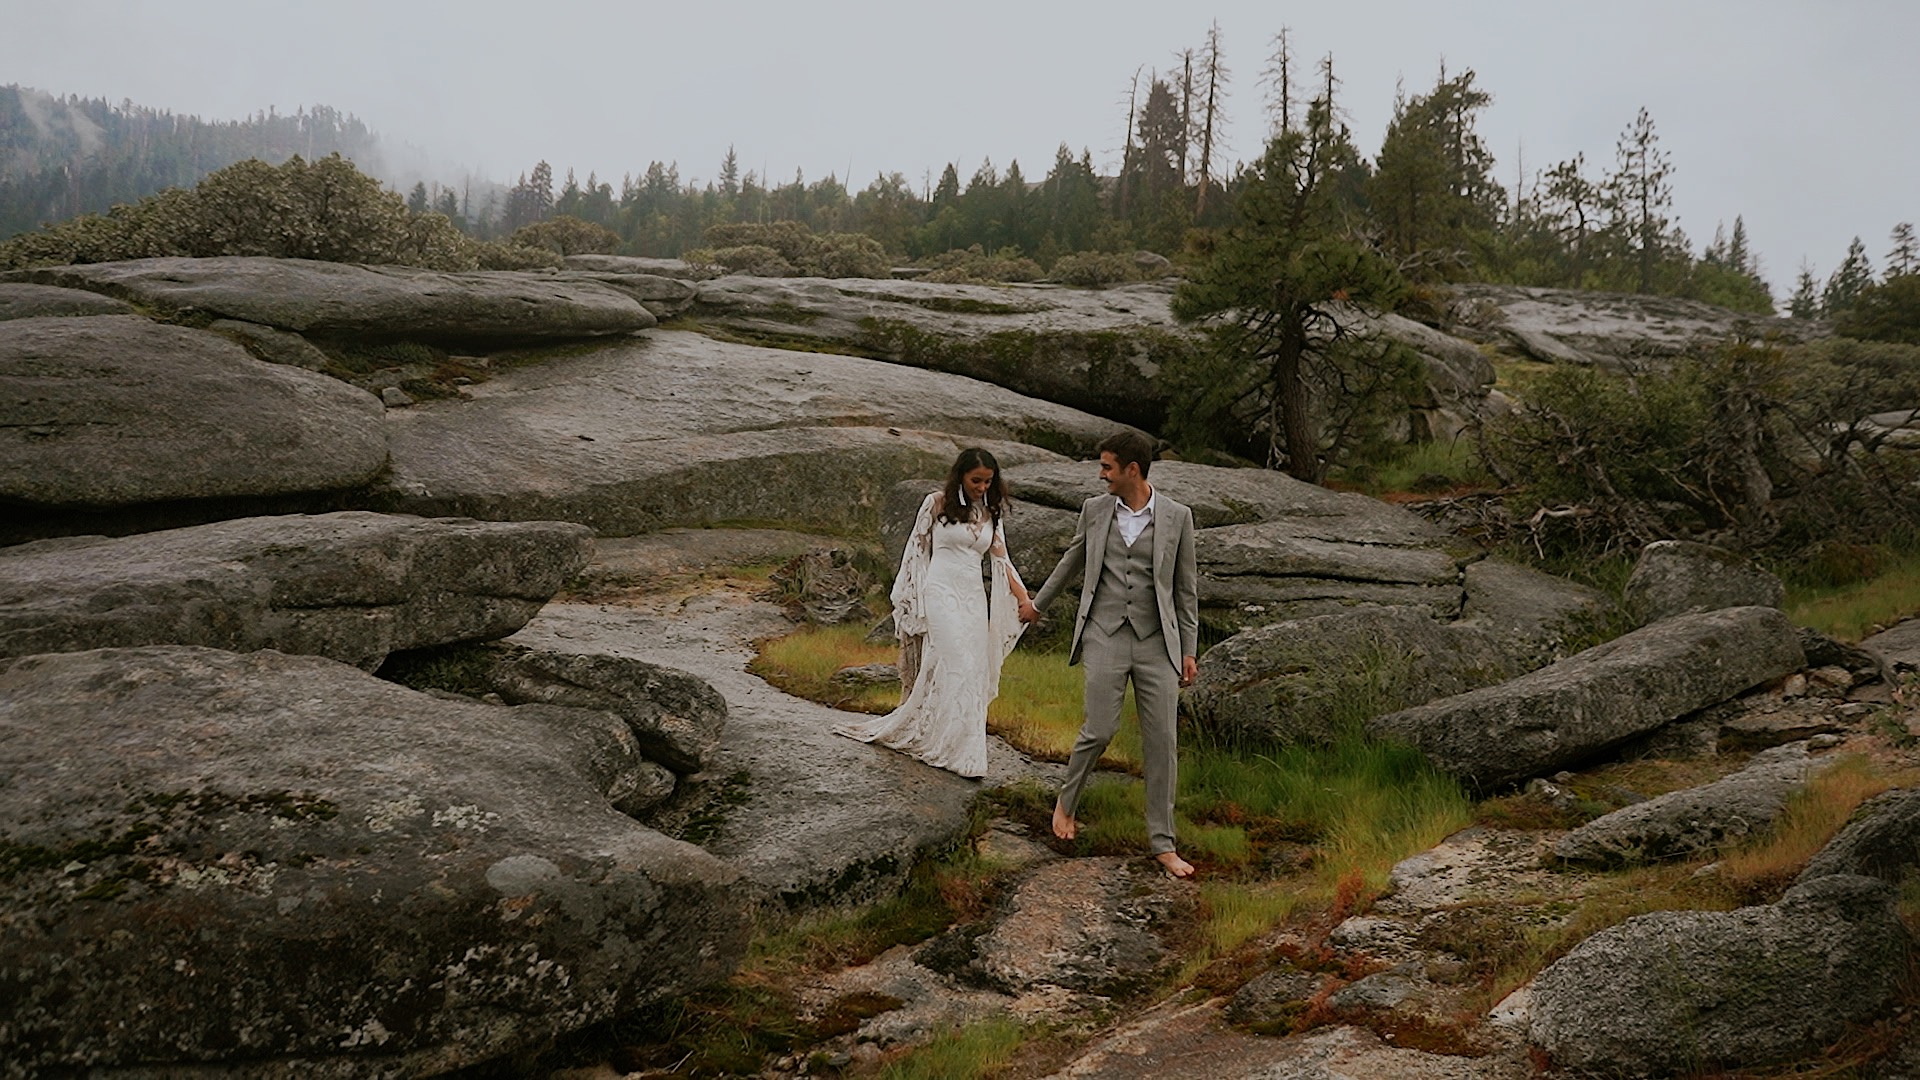 lina + julian | Yosemite Valley, California | Yosemite National Park